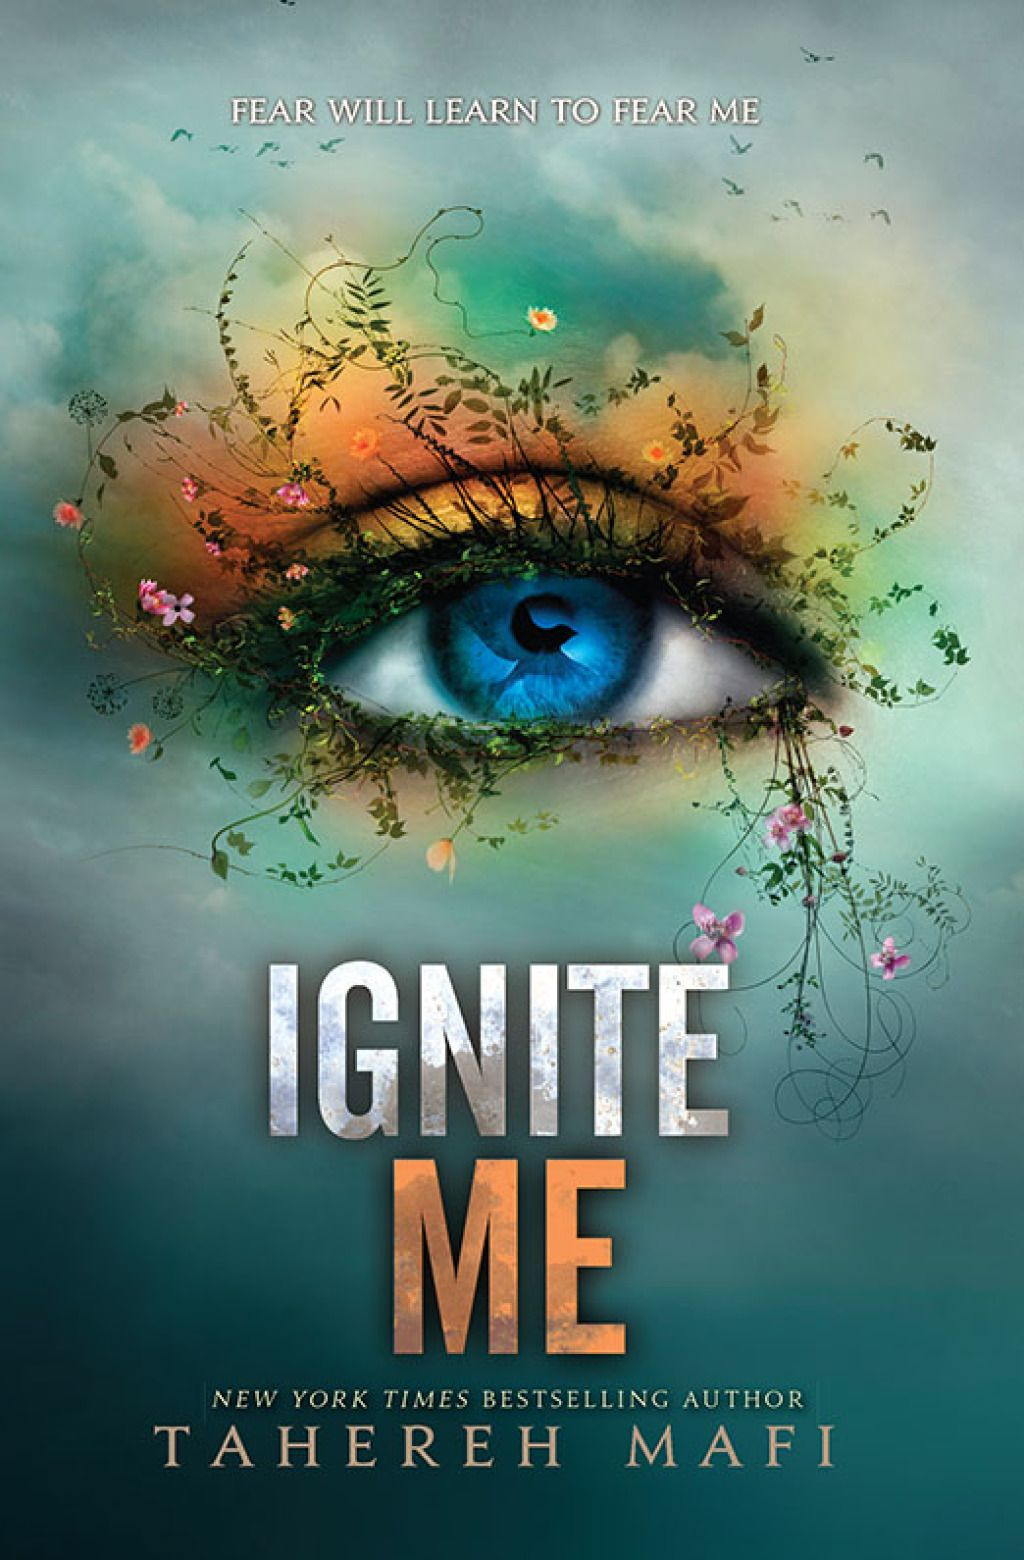 Ignite Me (eBook) is part of Ya fantasy books - By Tahereh Mafi PRINT ISBN 9780062085580 ETEXT ISBN 9780062085597 Edition 0